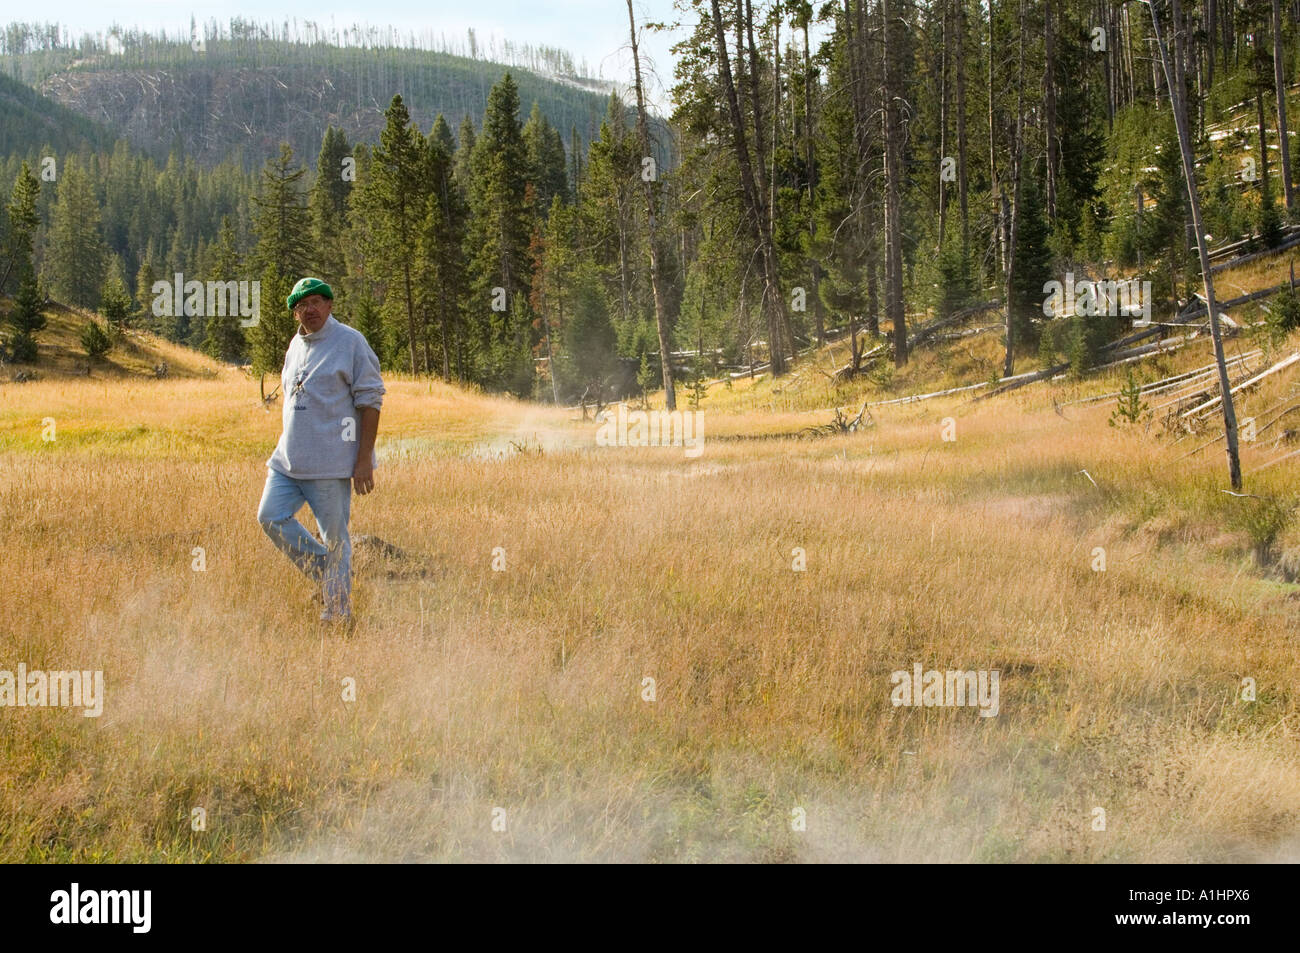 Stan Osolinski, nature photographer and teacher, walking on volcanically active meadow, Yellowstone National Park, Wyoming, USA - Stock Image